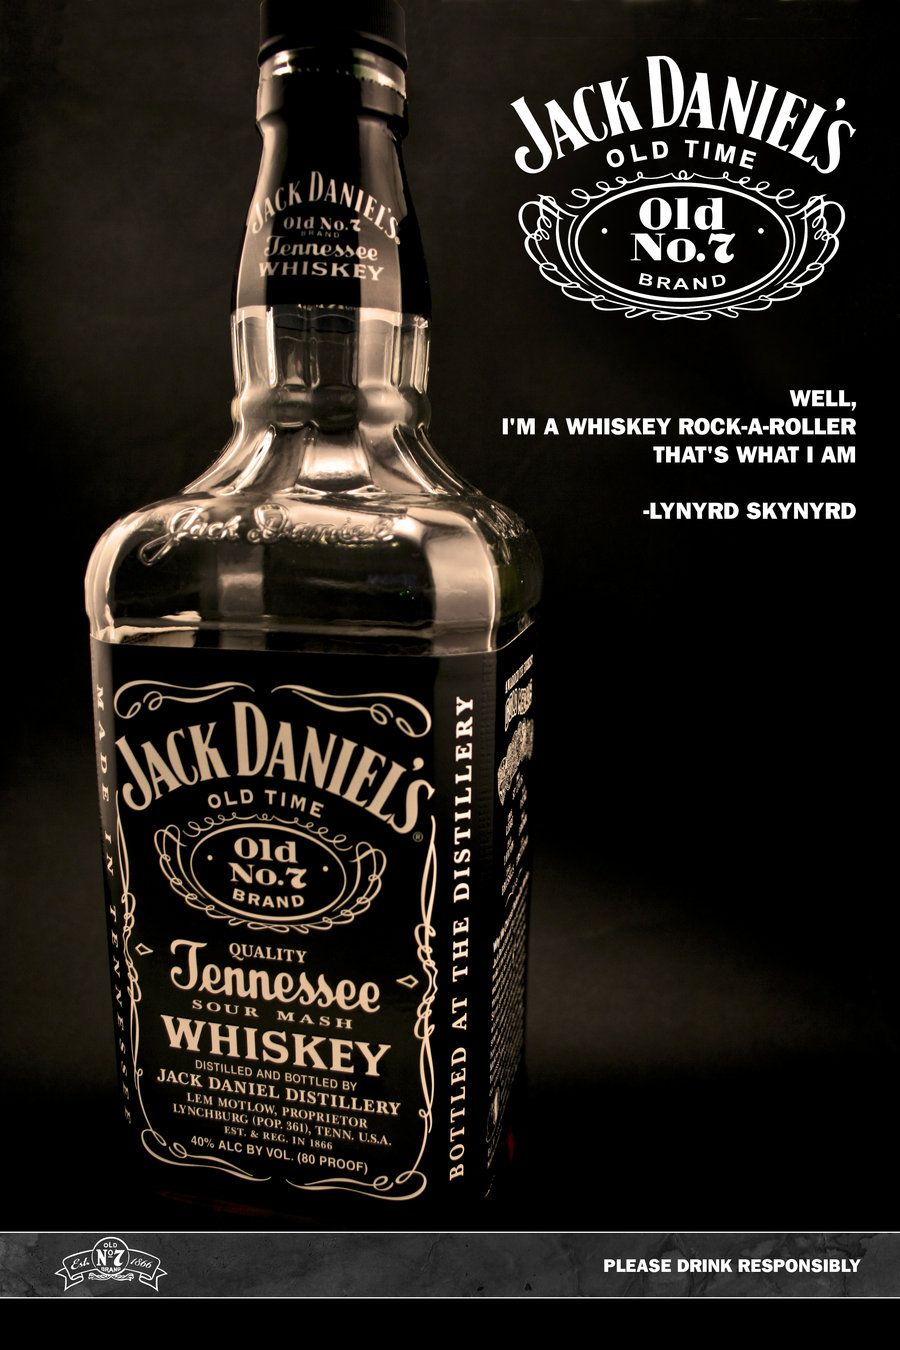 jack daniel s music ad 4 by ajohns95616 com on jack daniel s music ad 4 by ajohns95616 com on